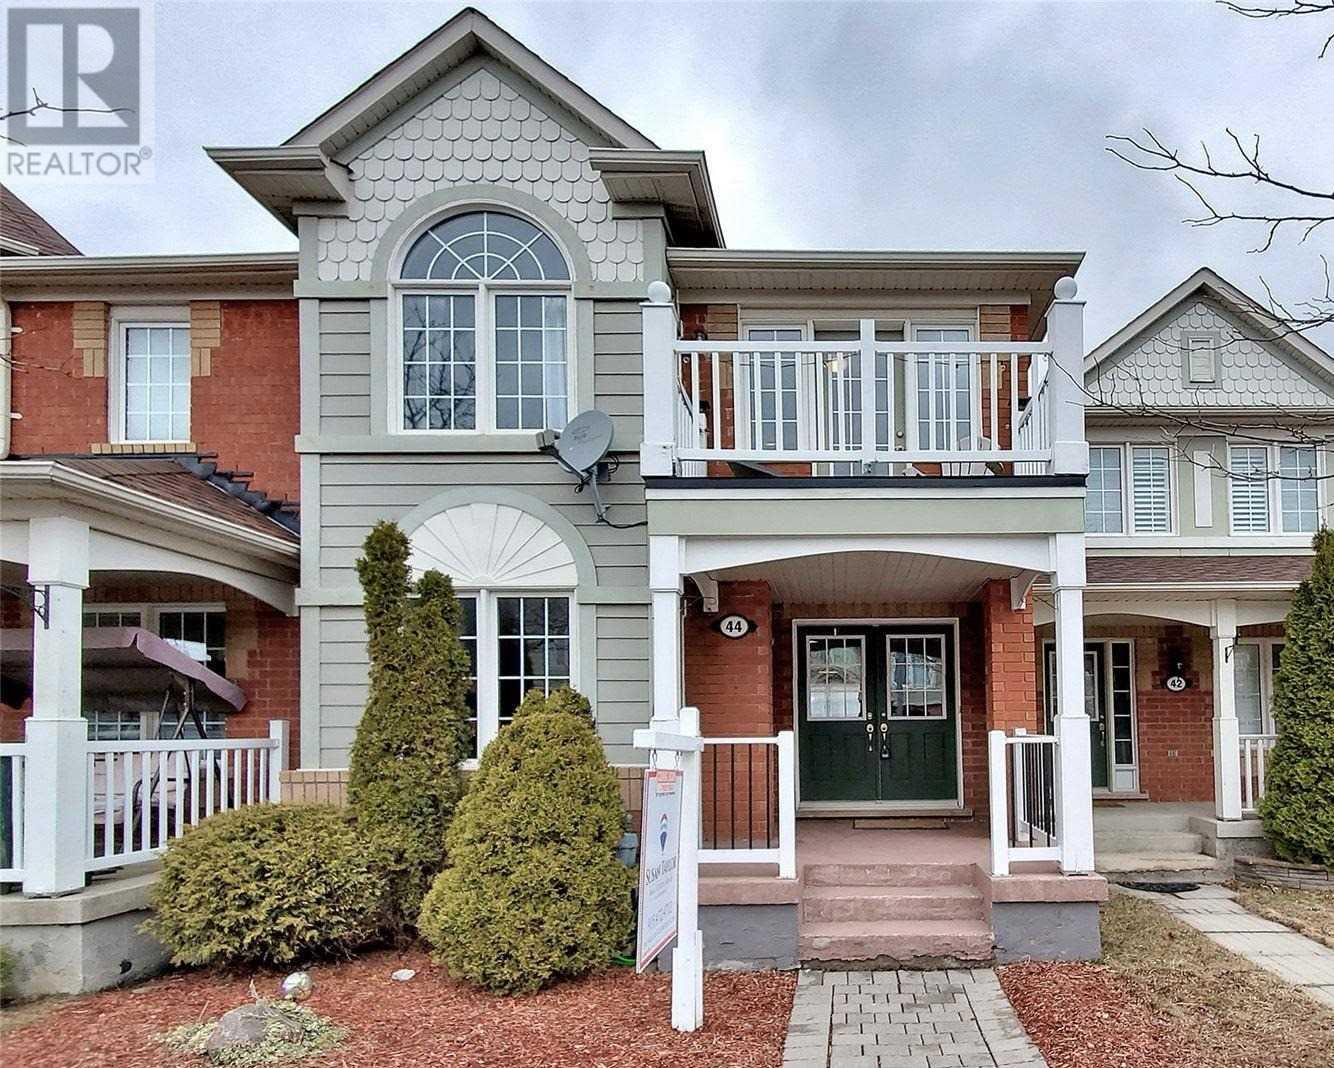 44 LAPPE AVE